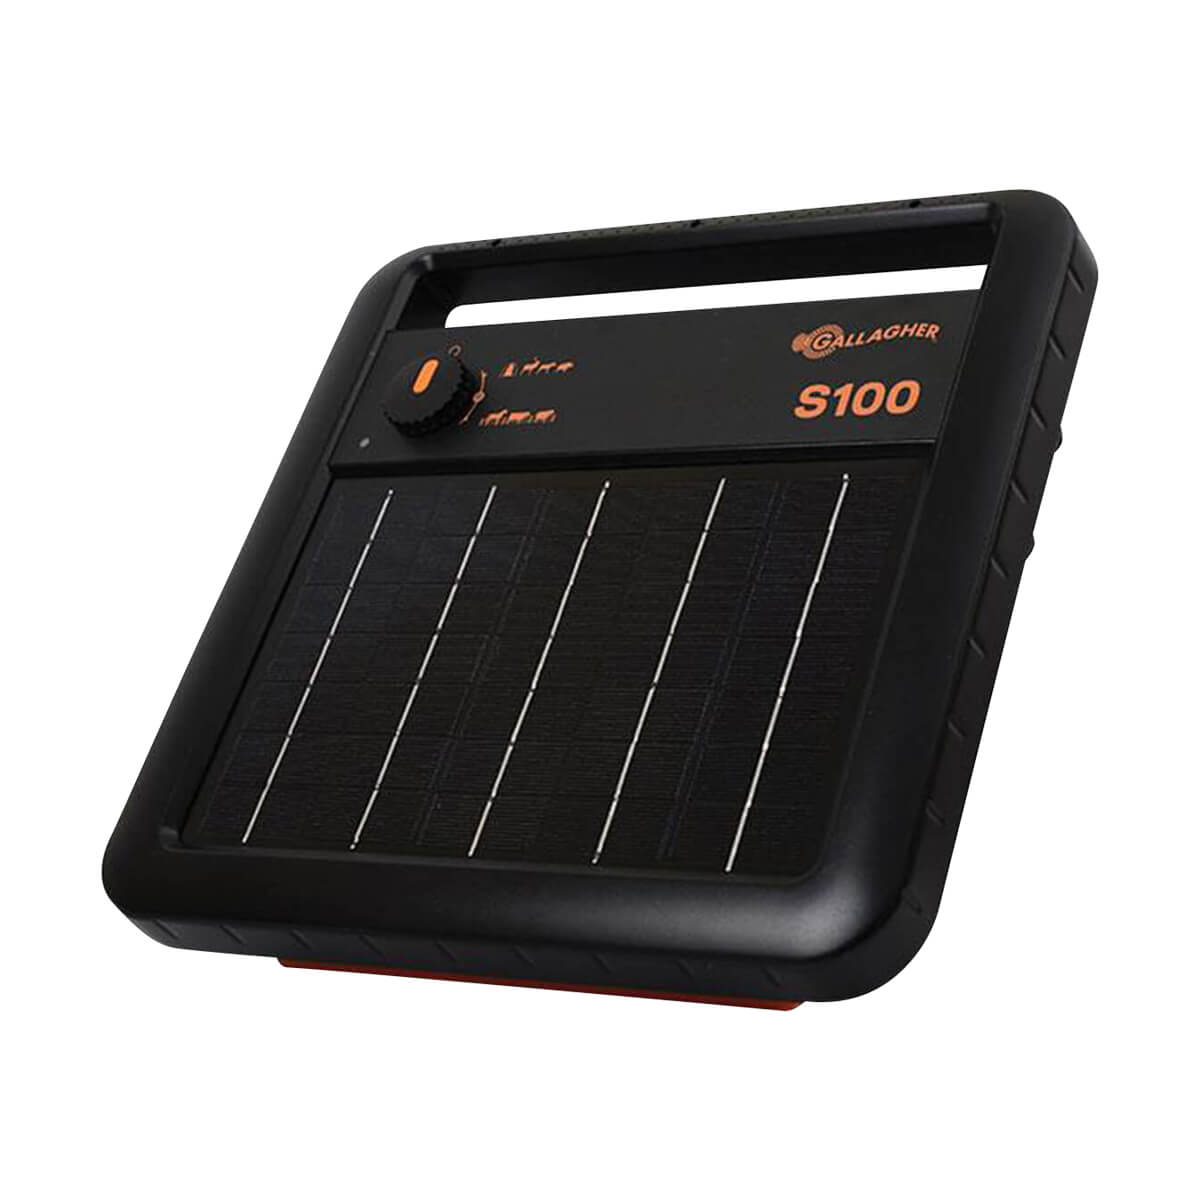 Gallagher Solar Fence Energizer S100